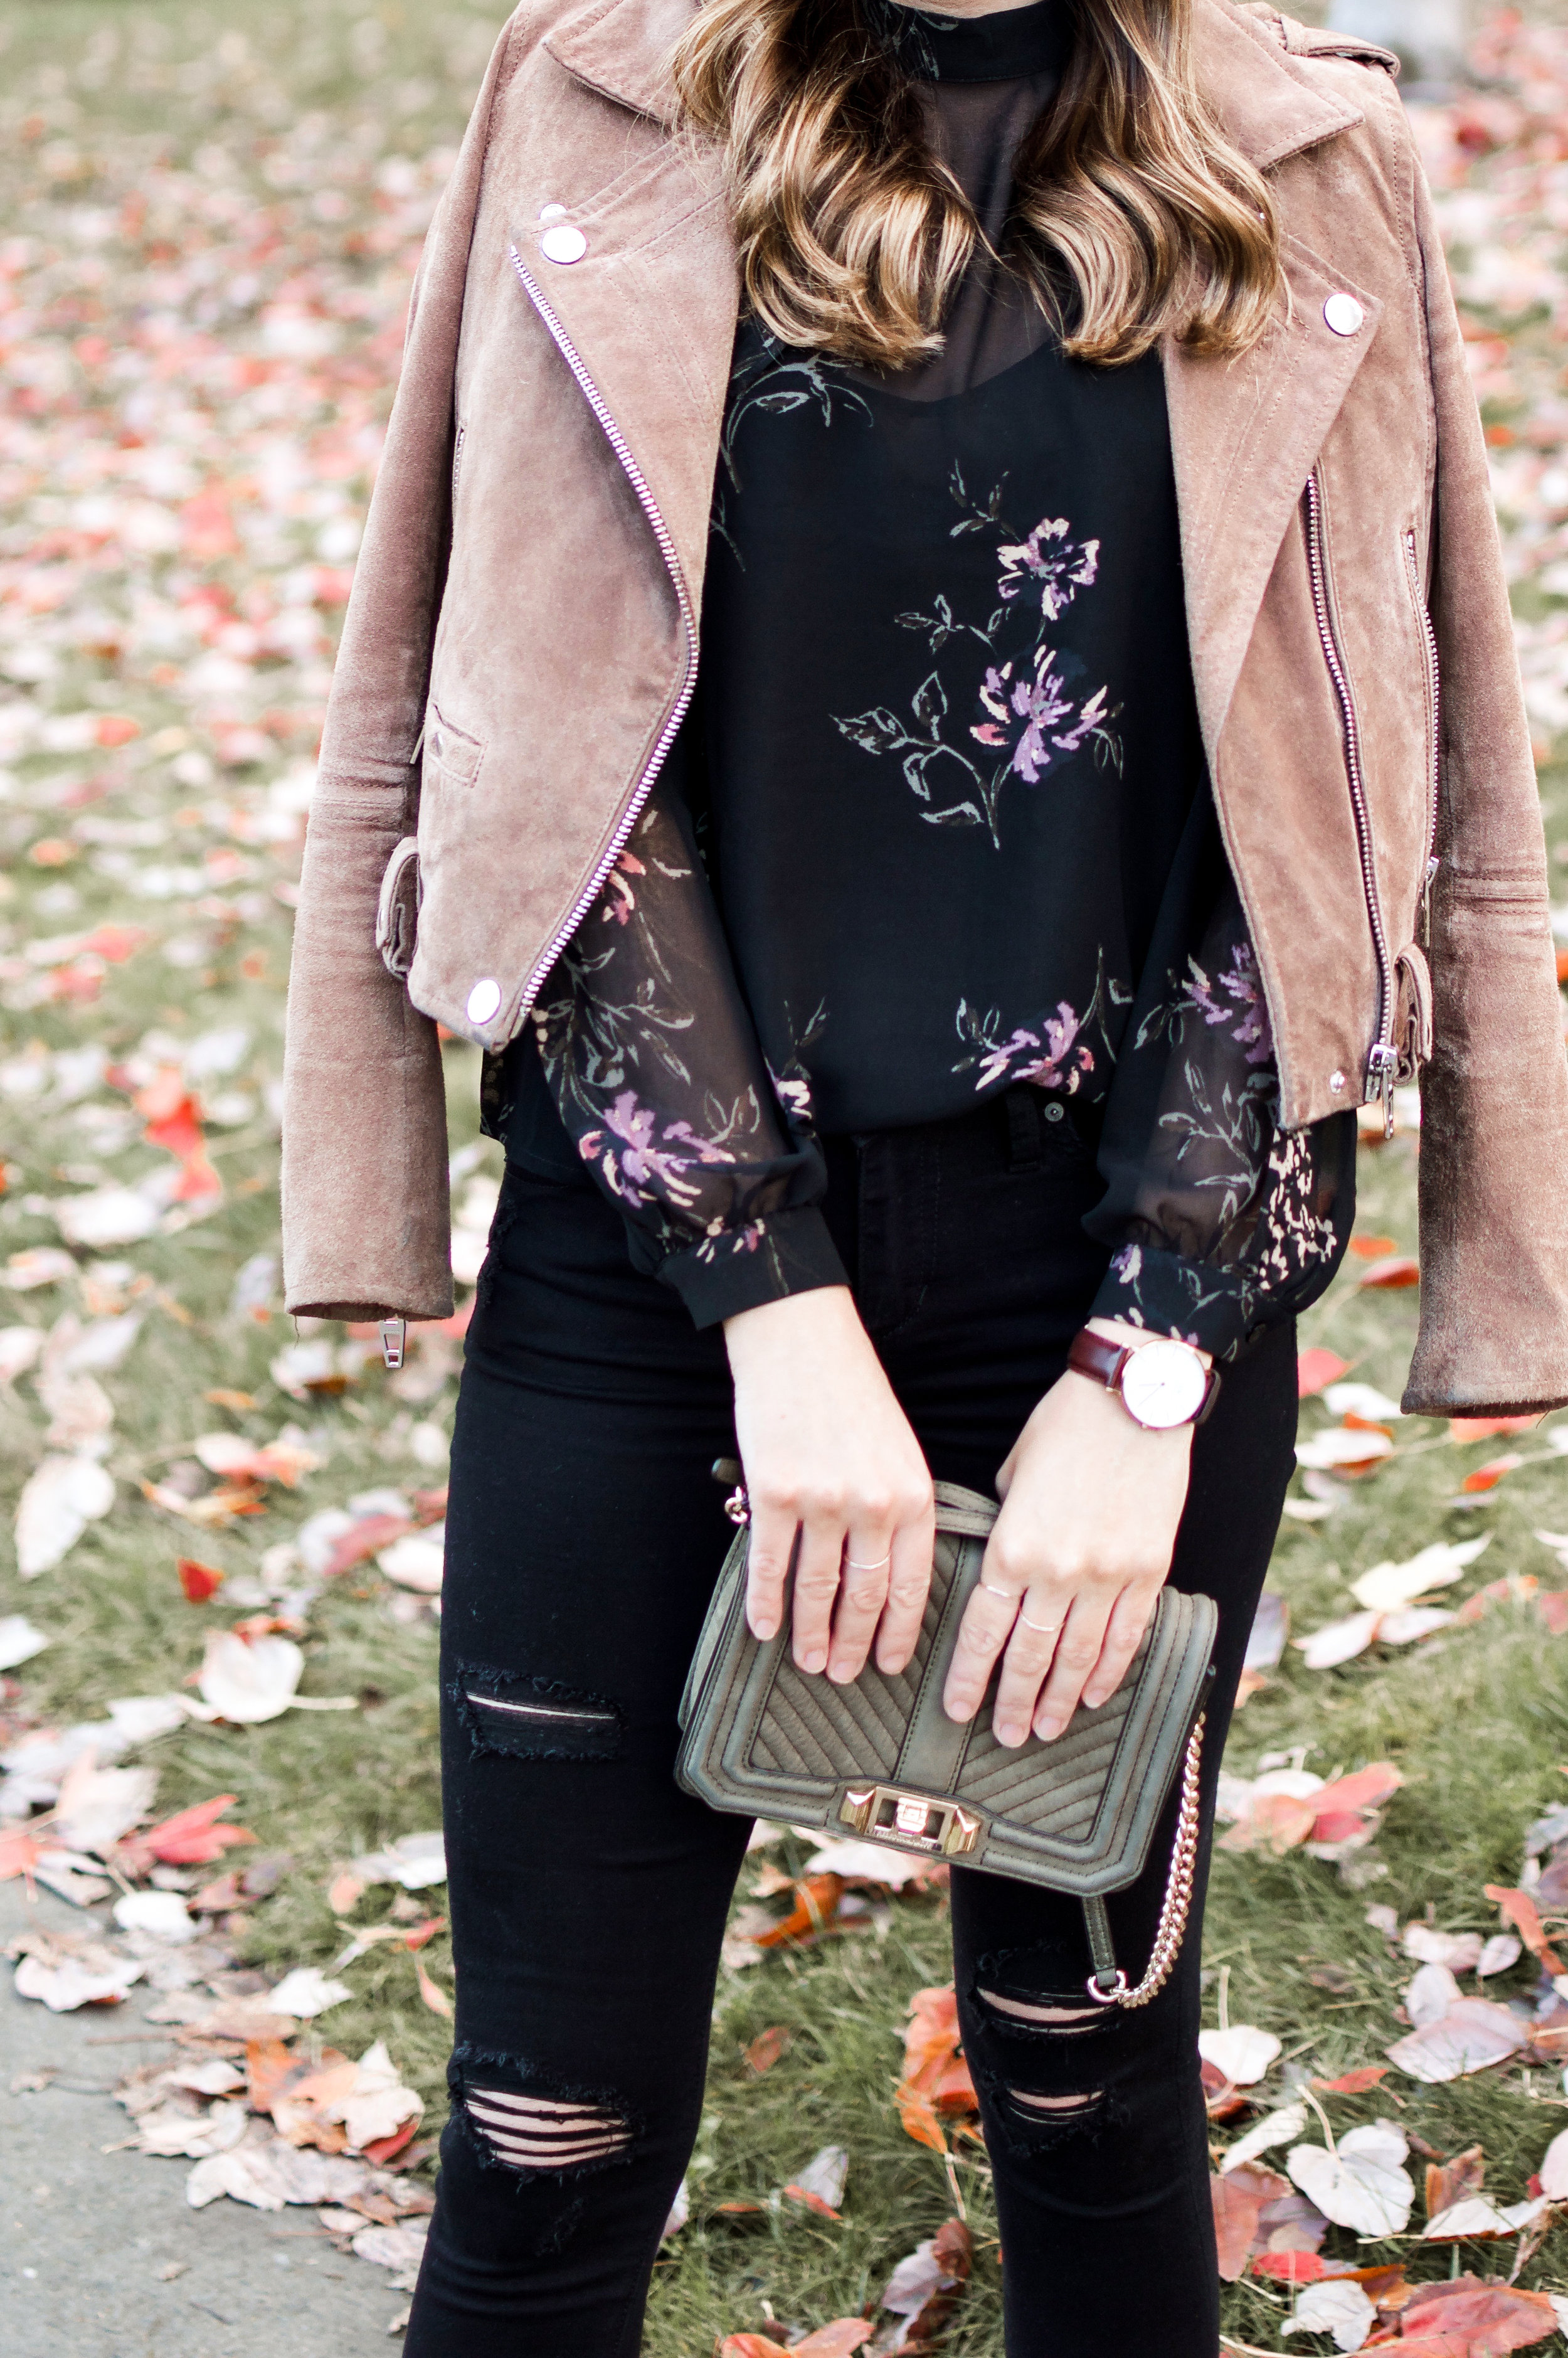 floral top for date night